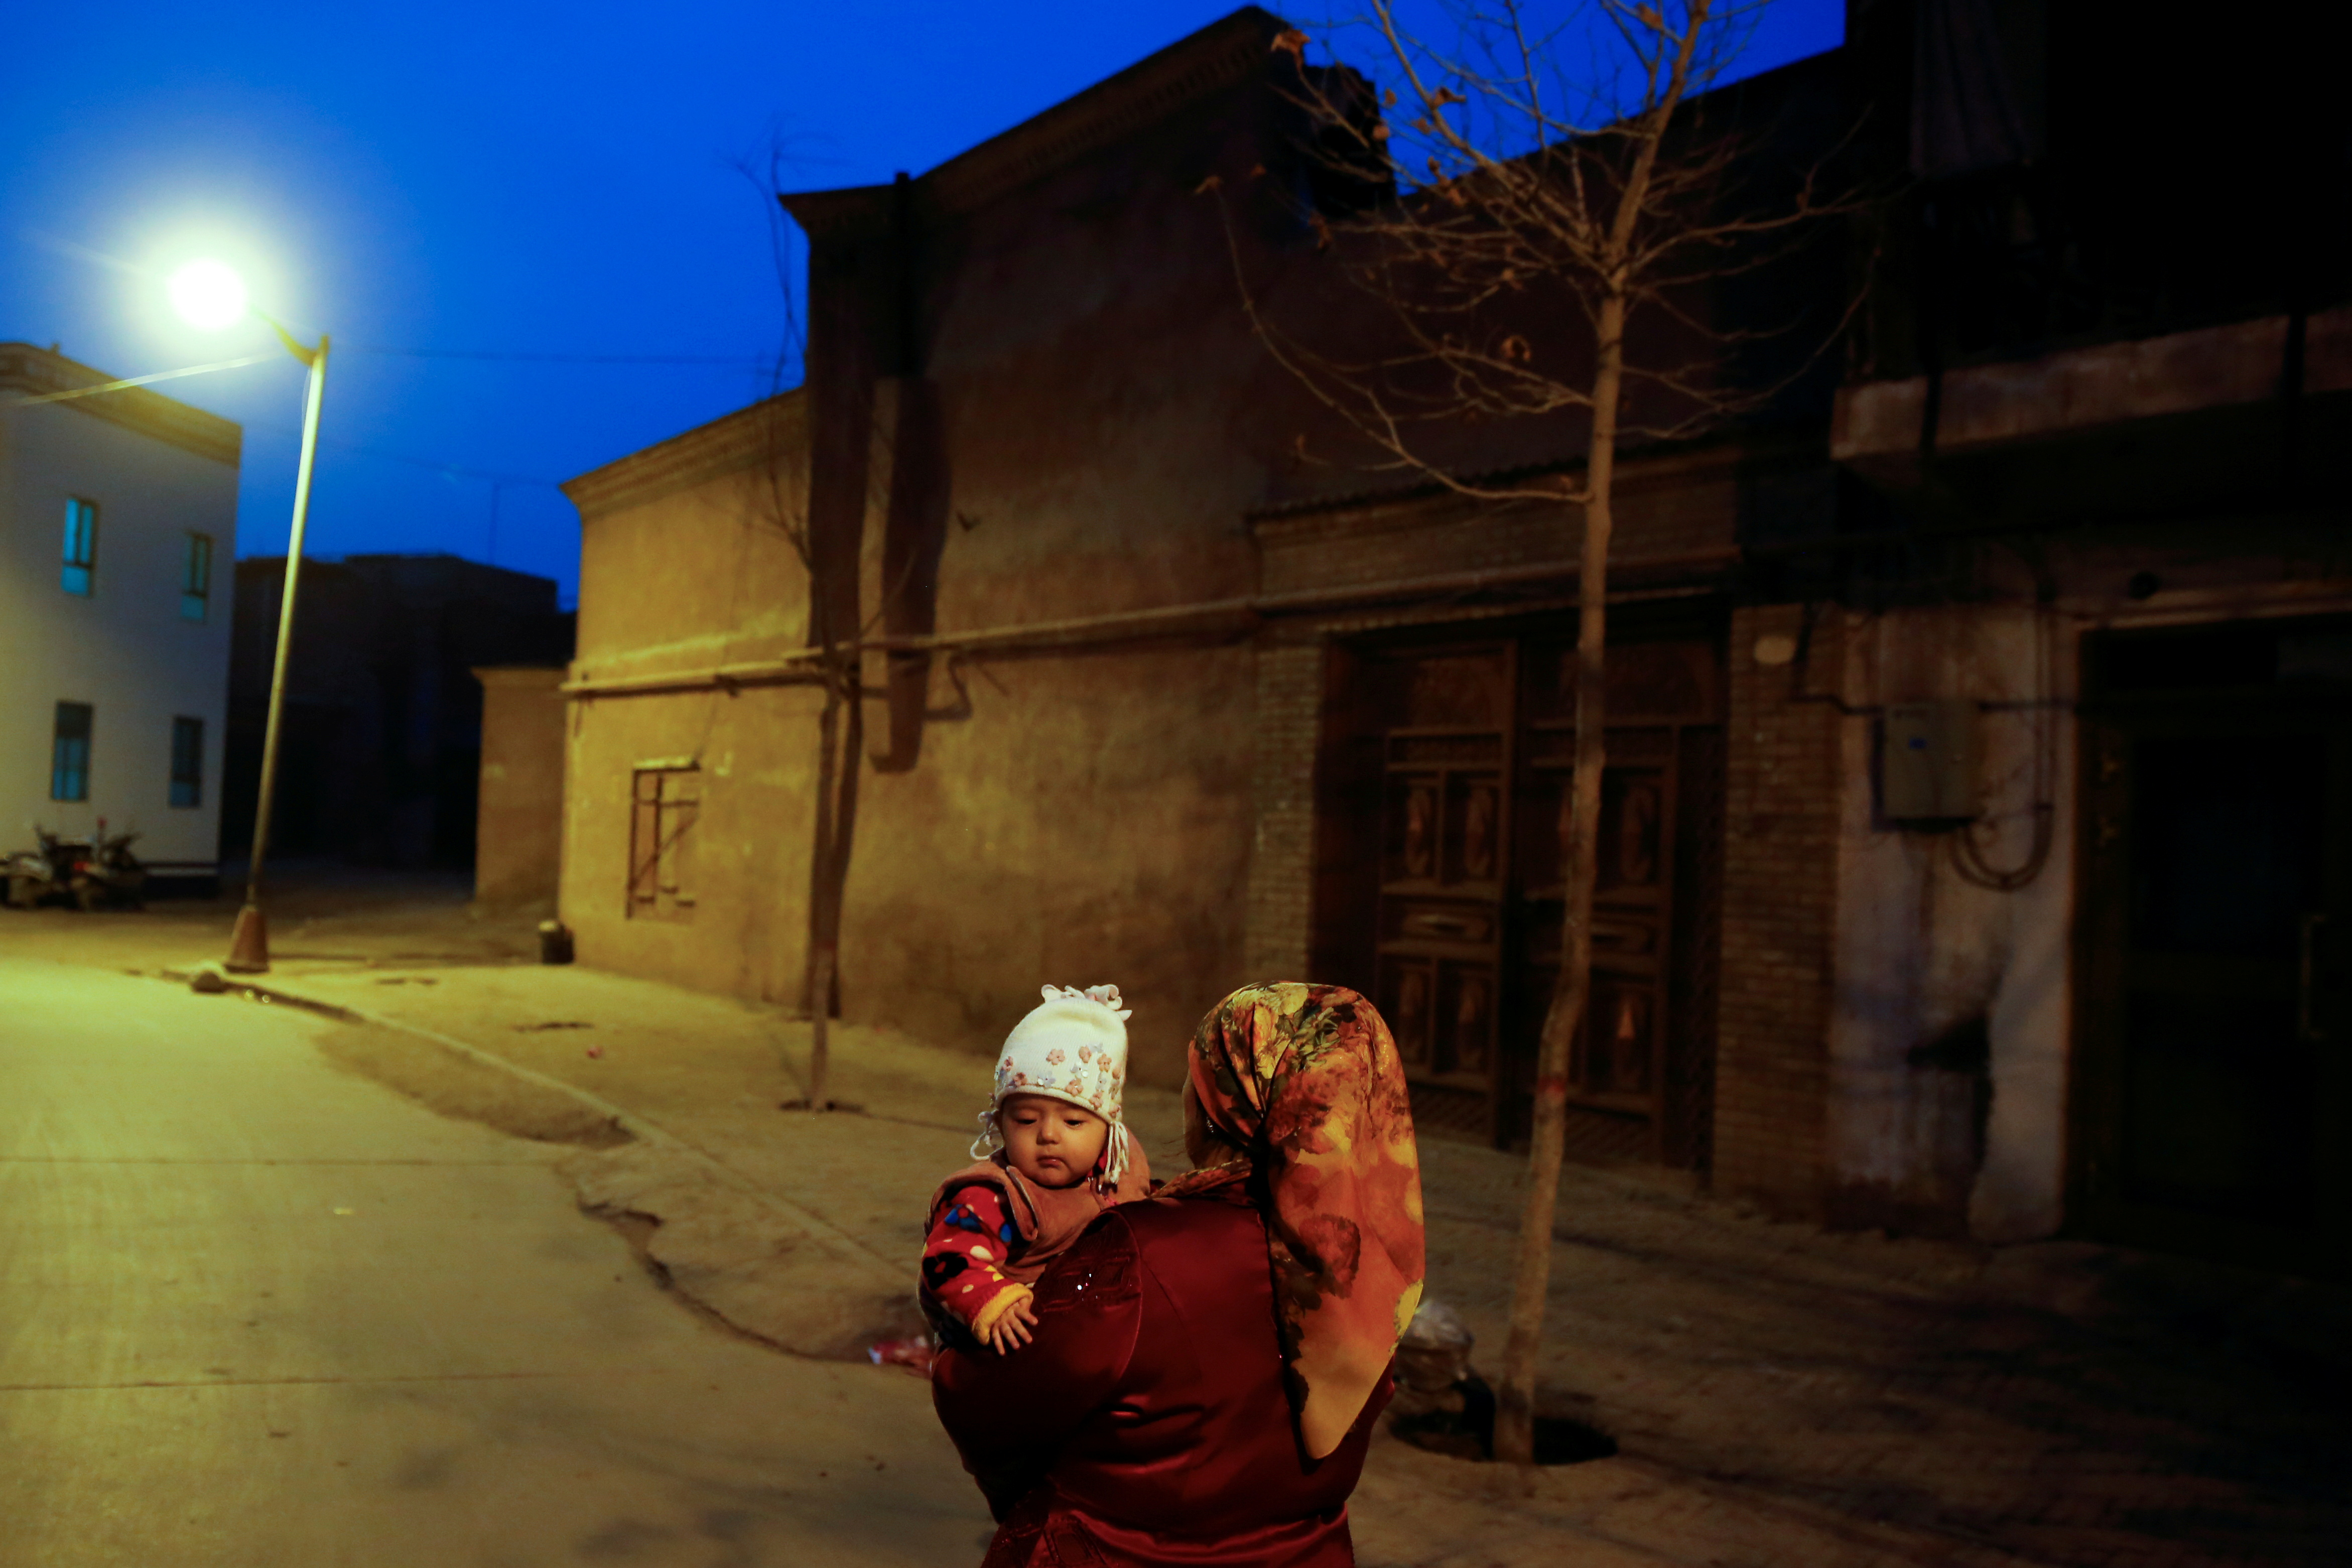 A woman carries a child at night in the old town of Kashgar, Xinjiang Uighur Autonomous Region, China, March 23, 2017.  REUTERS/Thomas Peter/File Photo